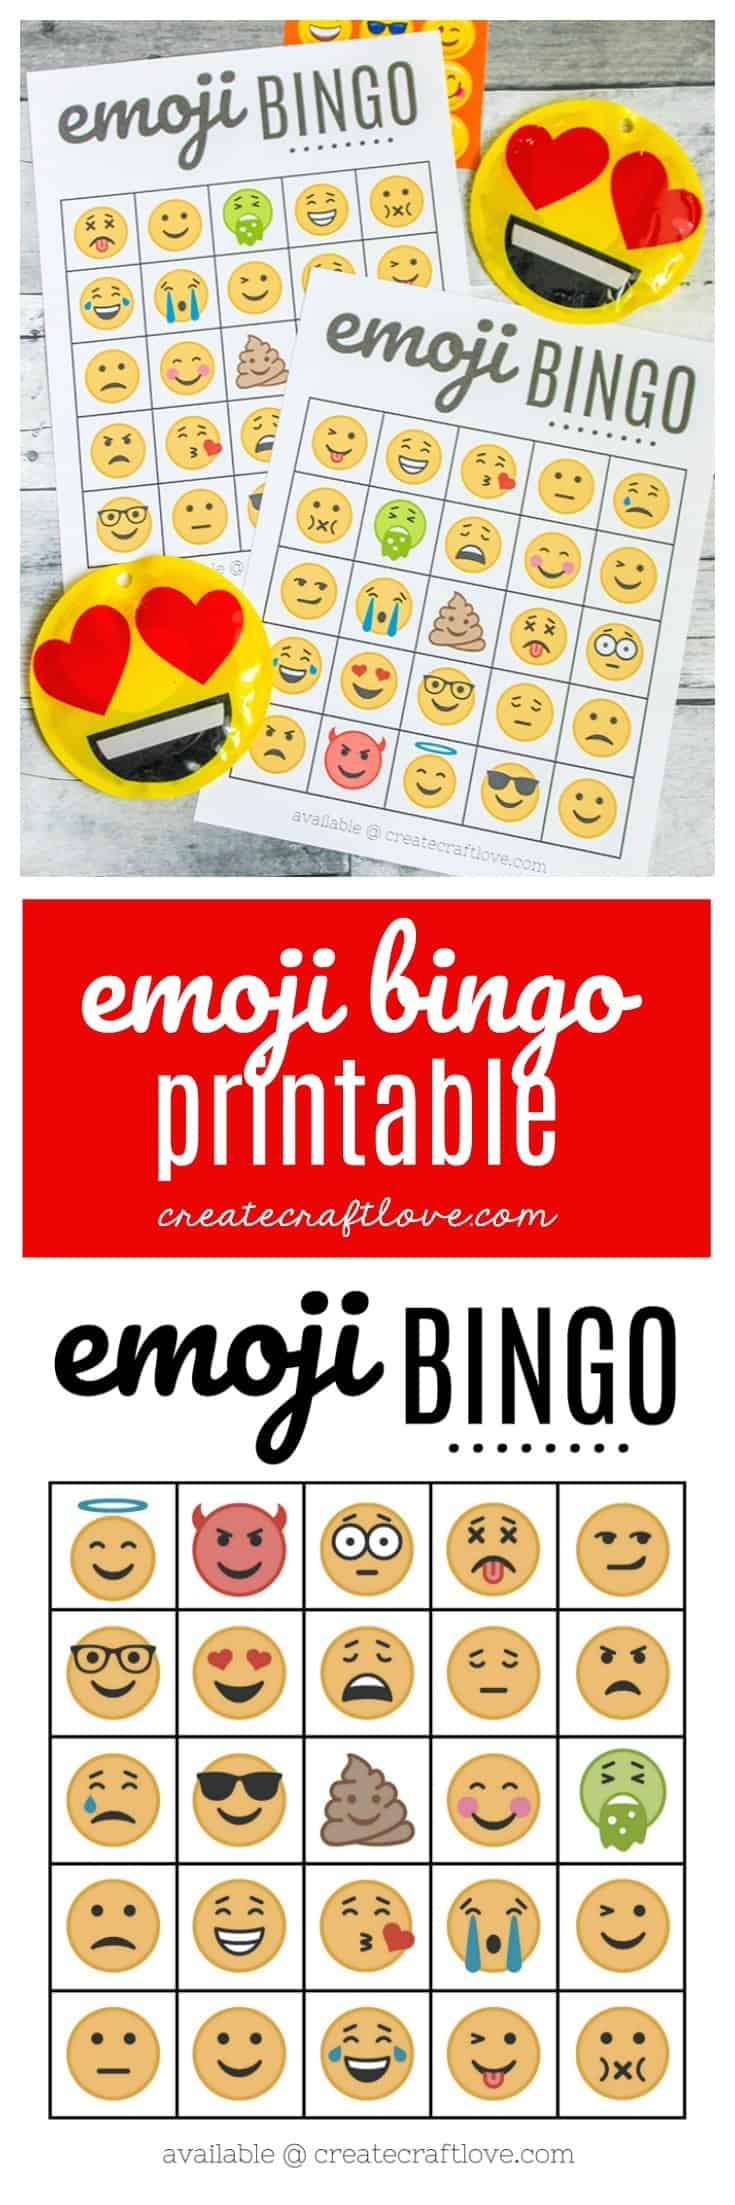 Free Emoji Bingo Printable - Create Craft Love - Free Emoji Bingo Printable